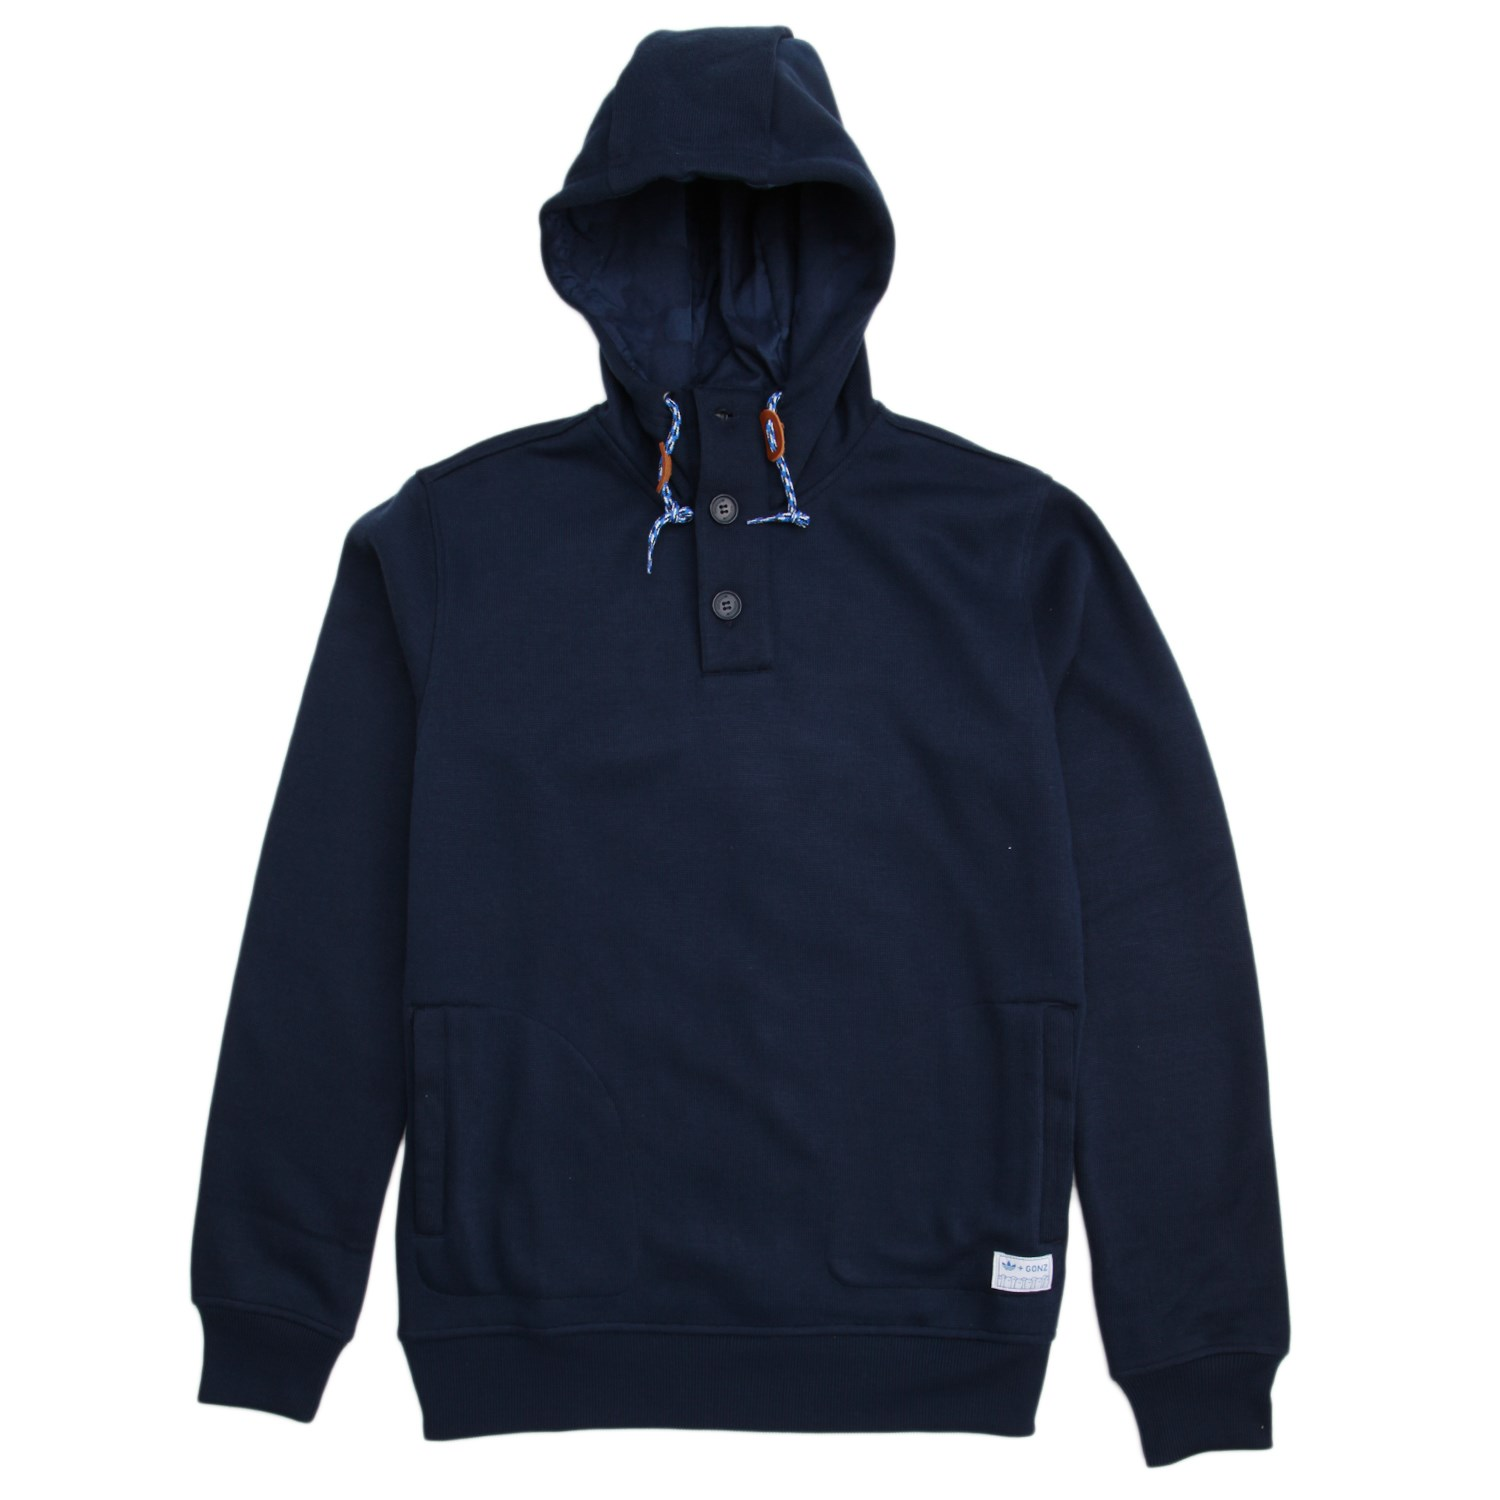 Adidas Pullover Mädchen Adidas Gonz Pullover Hoodie Evo Outlet